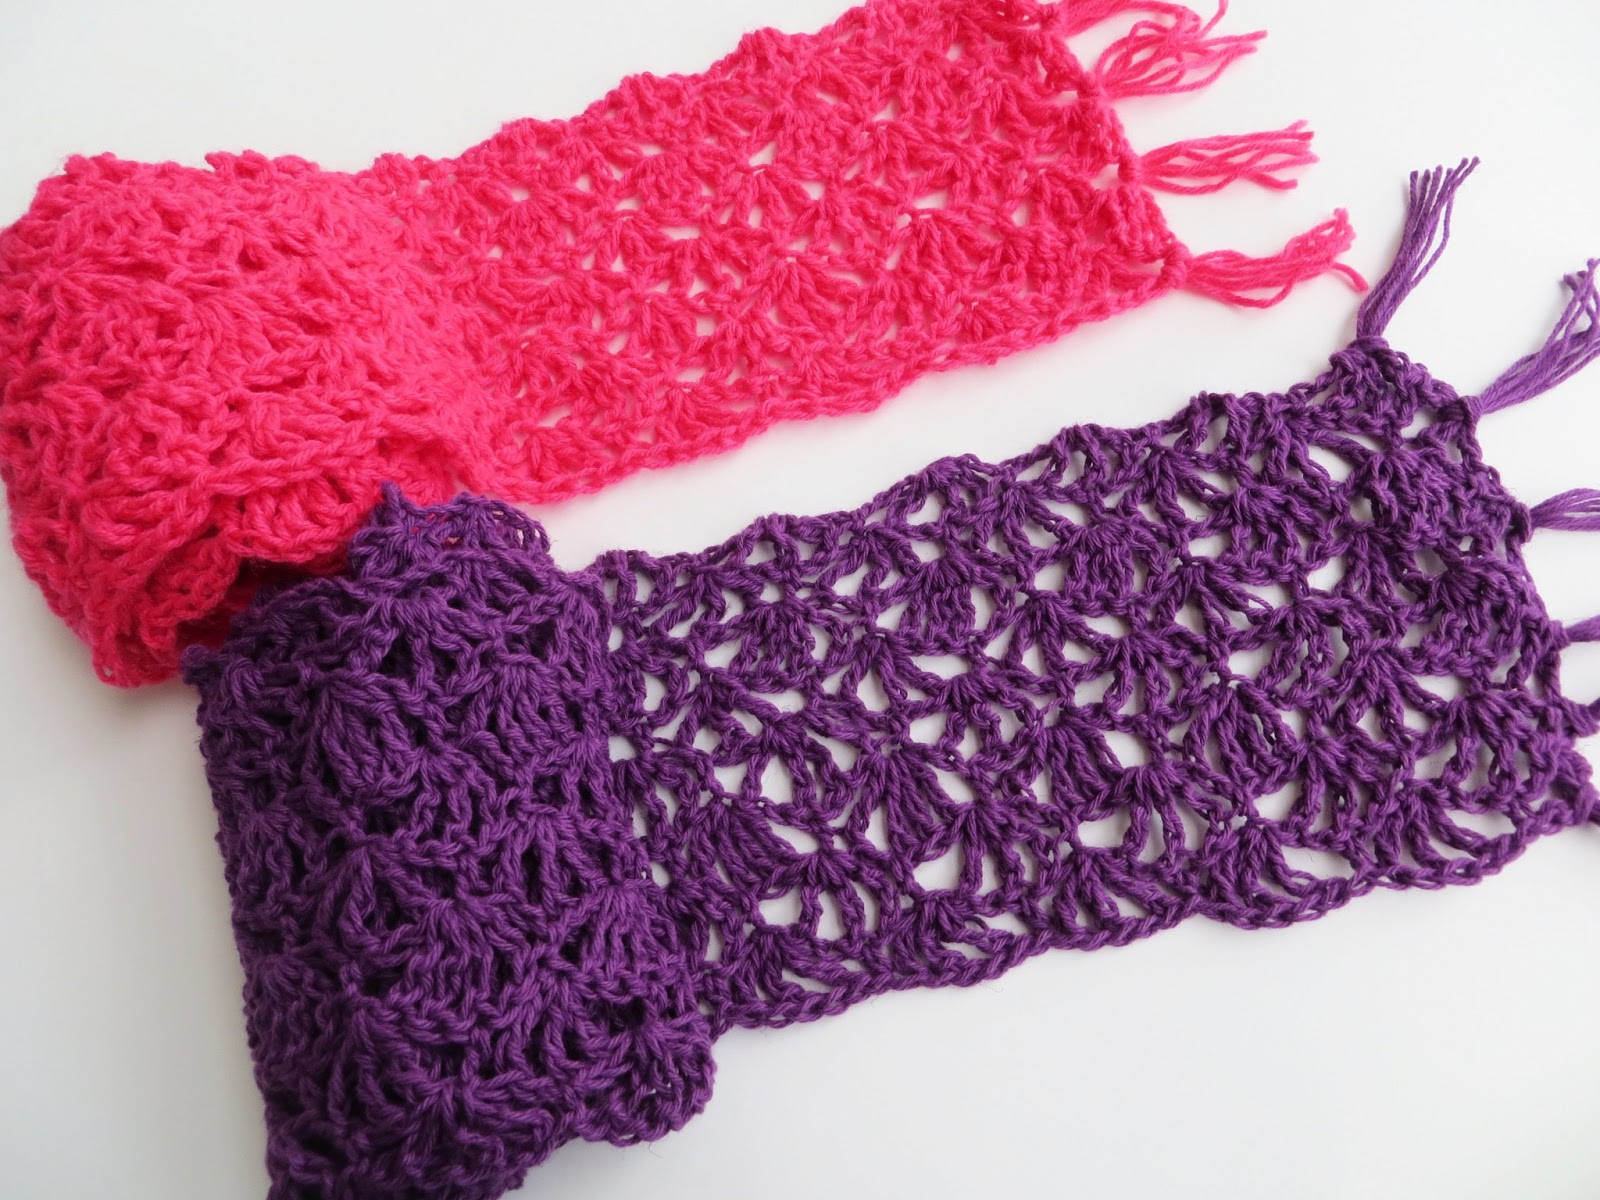 Crochet Stitches With Pattern : Crochet Dreamz: Alana Lacy Scarf, Free Crochet Pattern